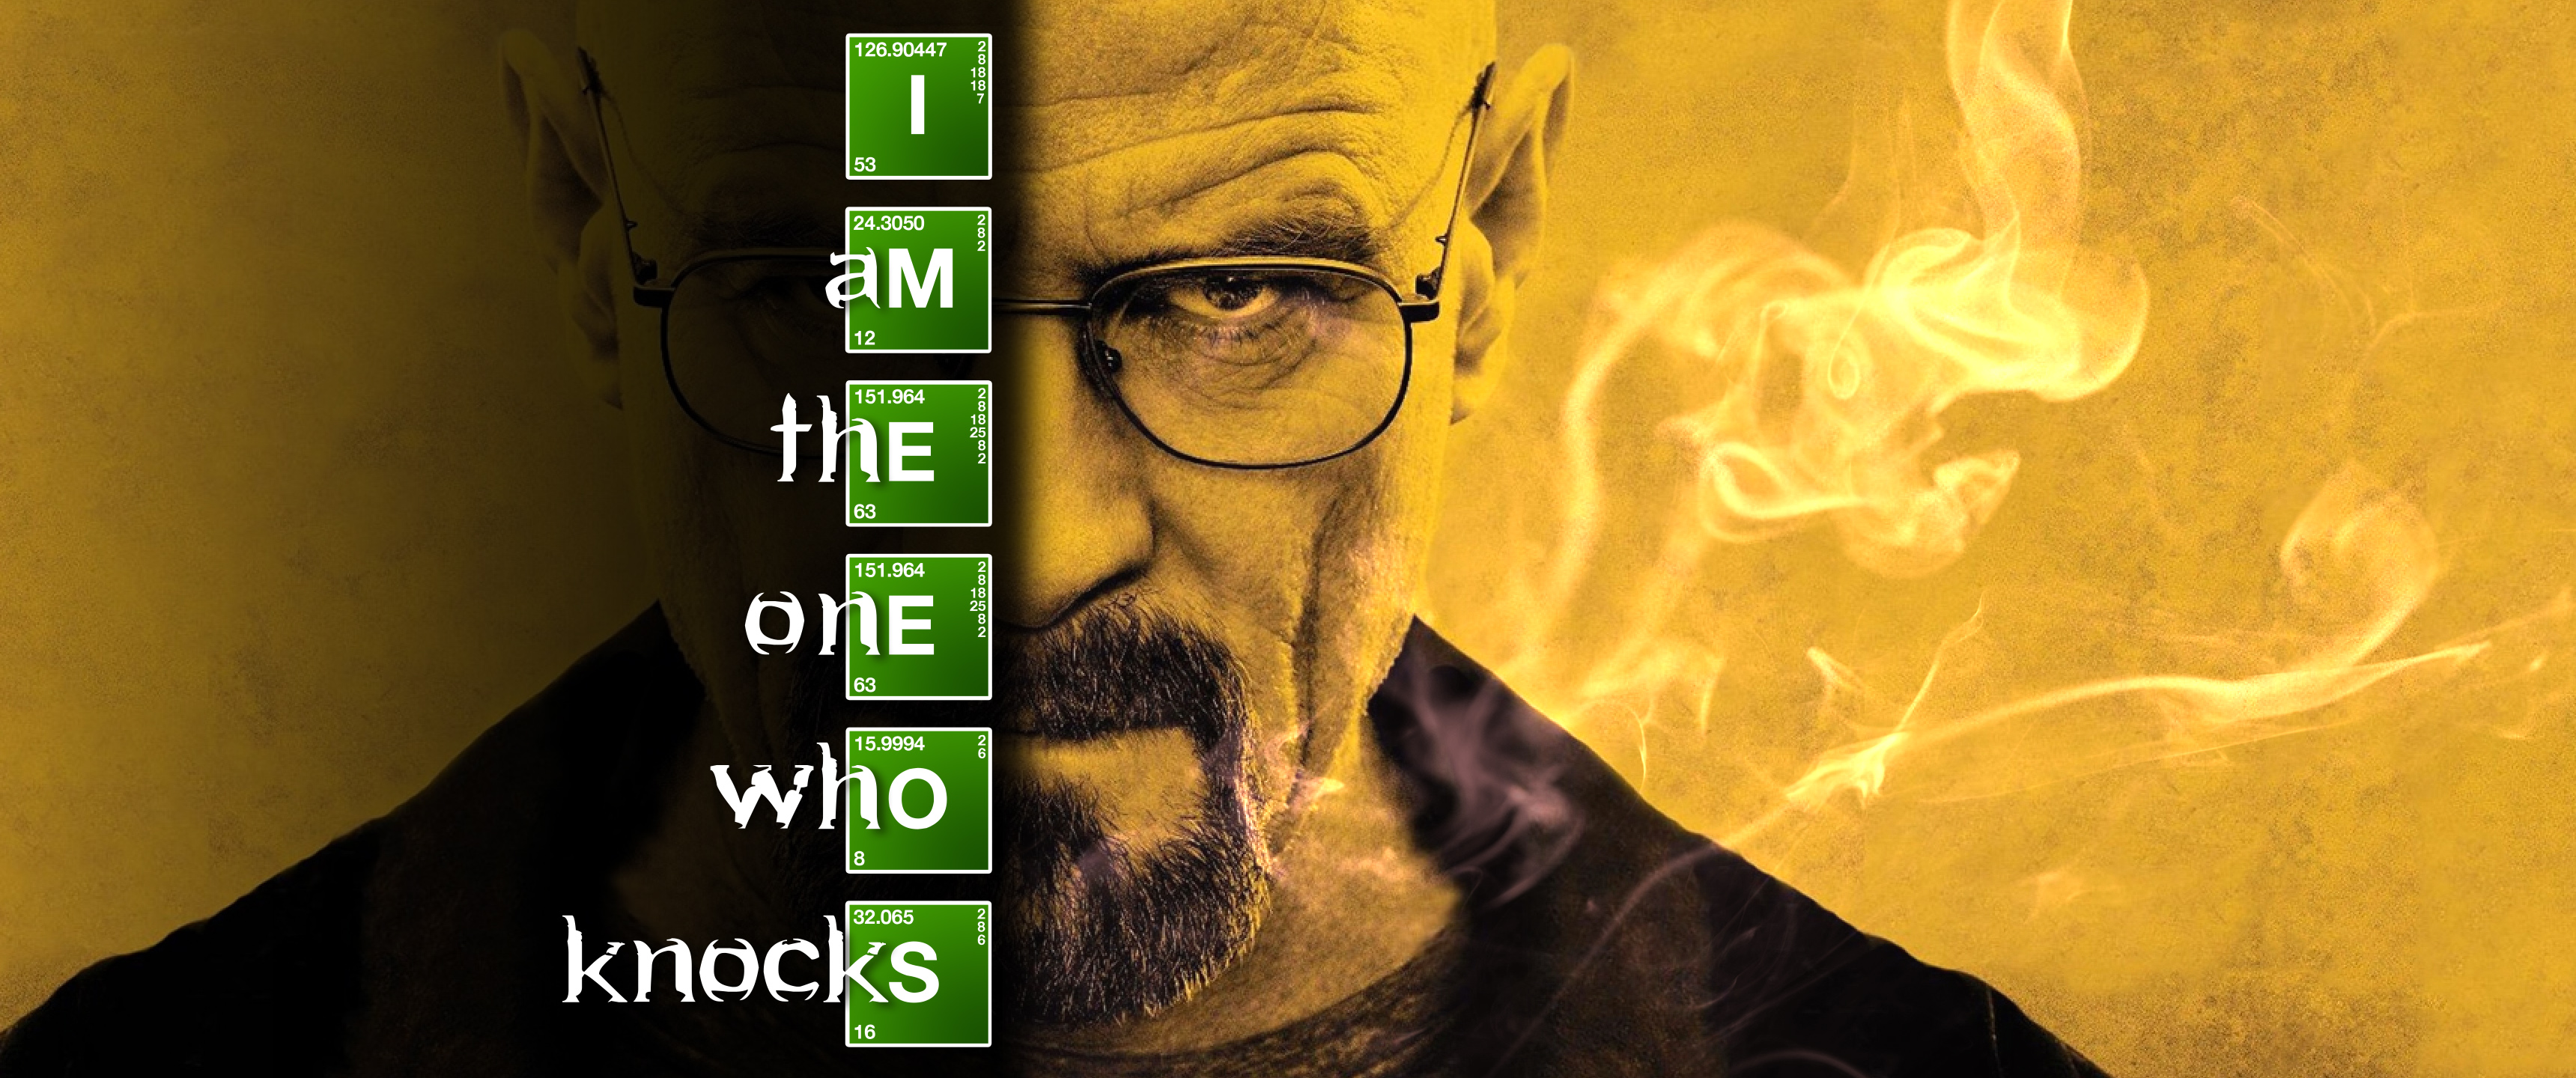 Breaking Bad Wallpapers Photo Is 4K Wallpaper